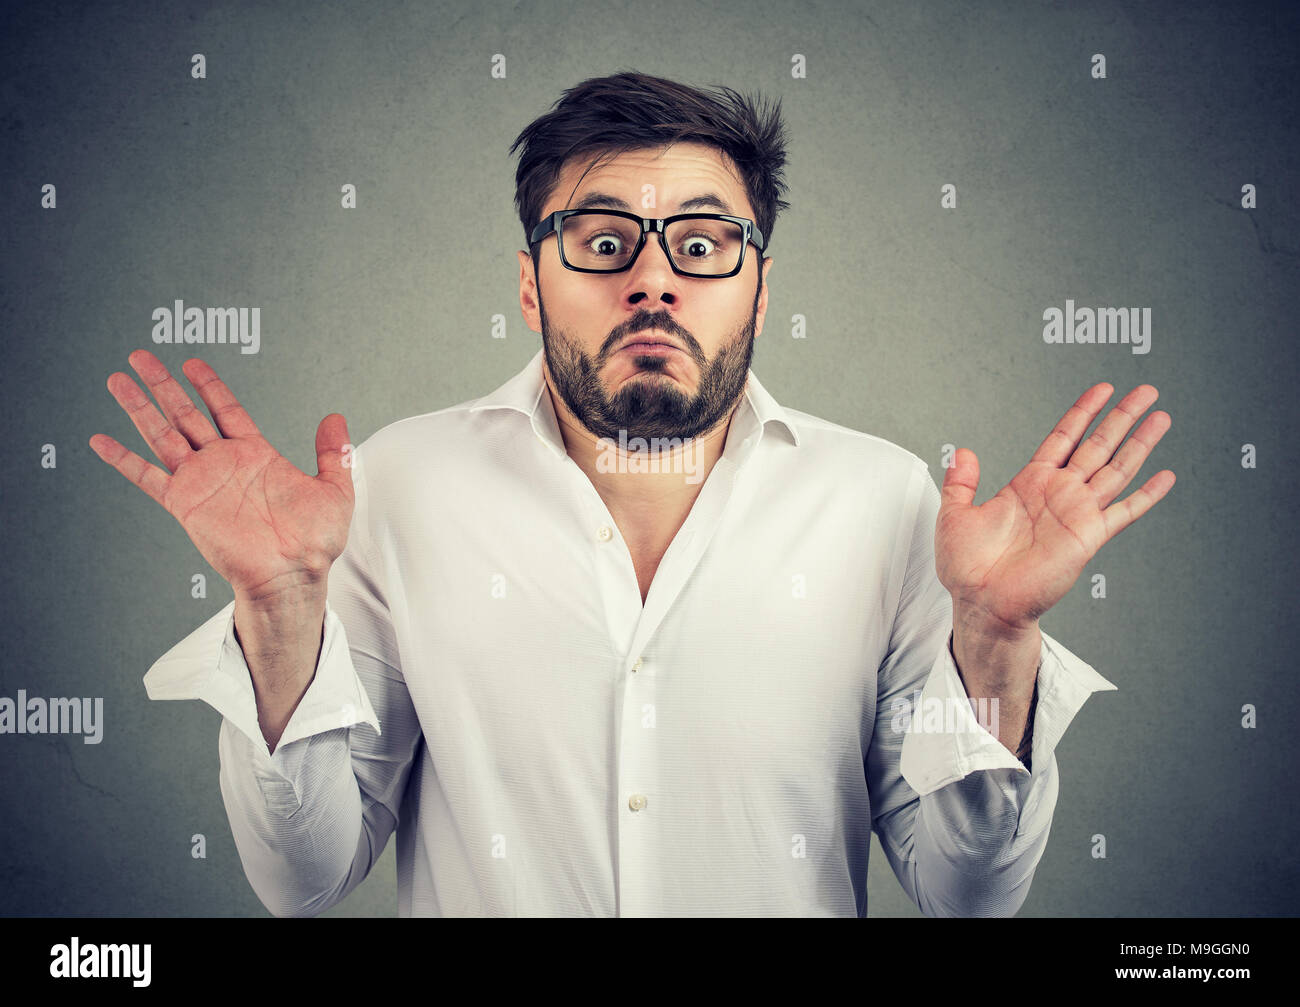 Young handsome man in eyeglasses looking super confused and shrugging with shoulders looking at camera. - Stock Image